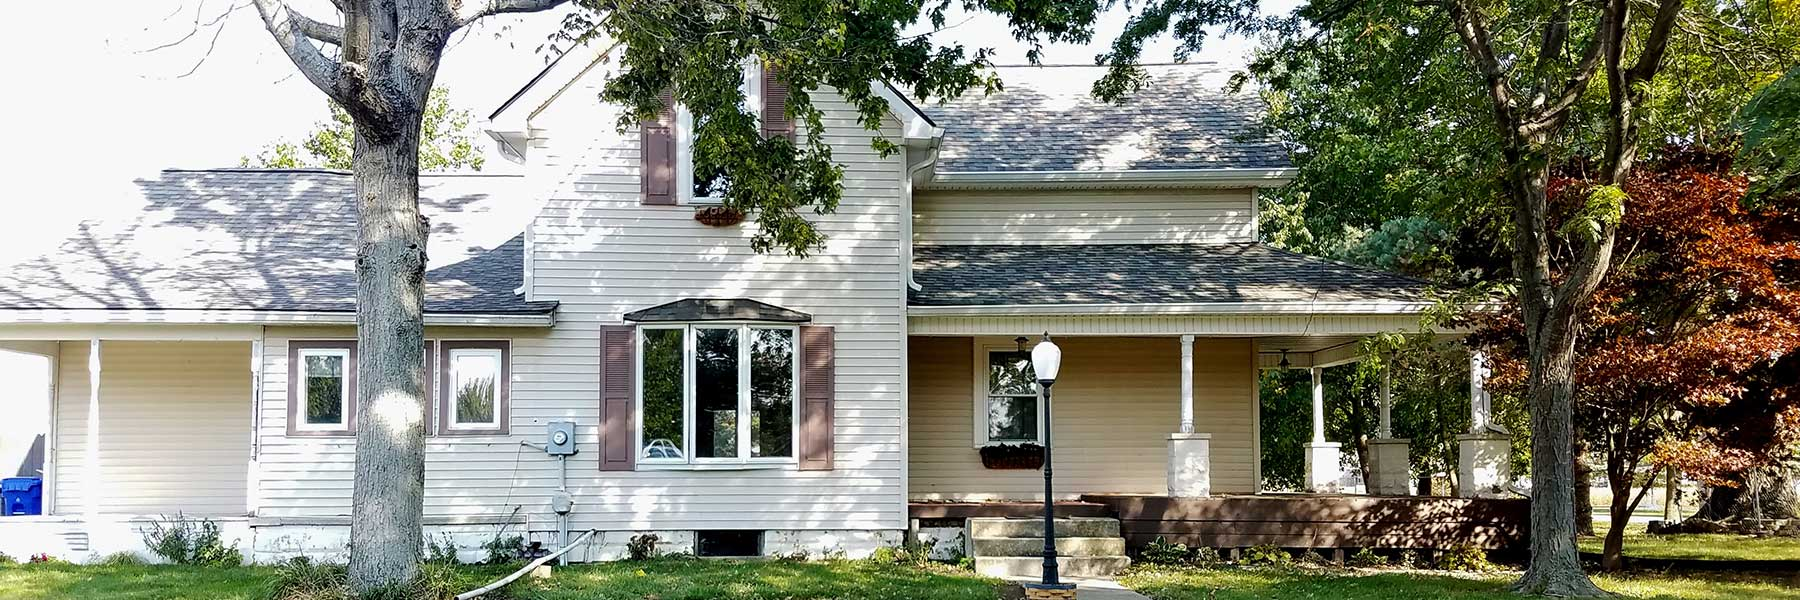 property before and after in sharpsville Indiana